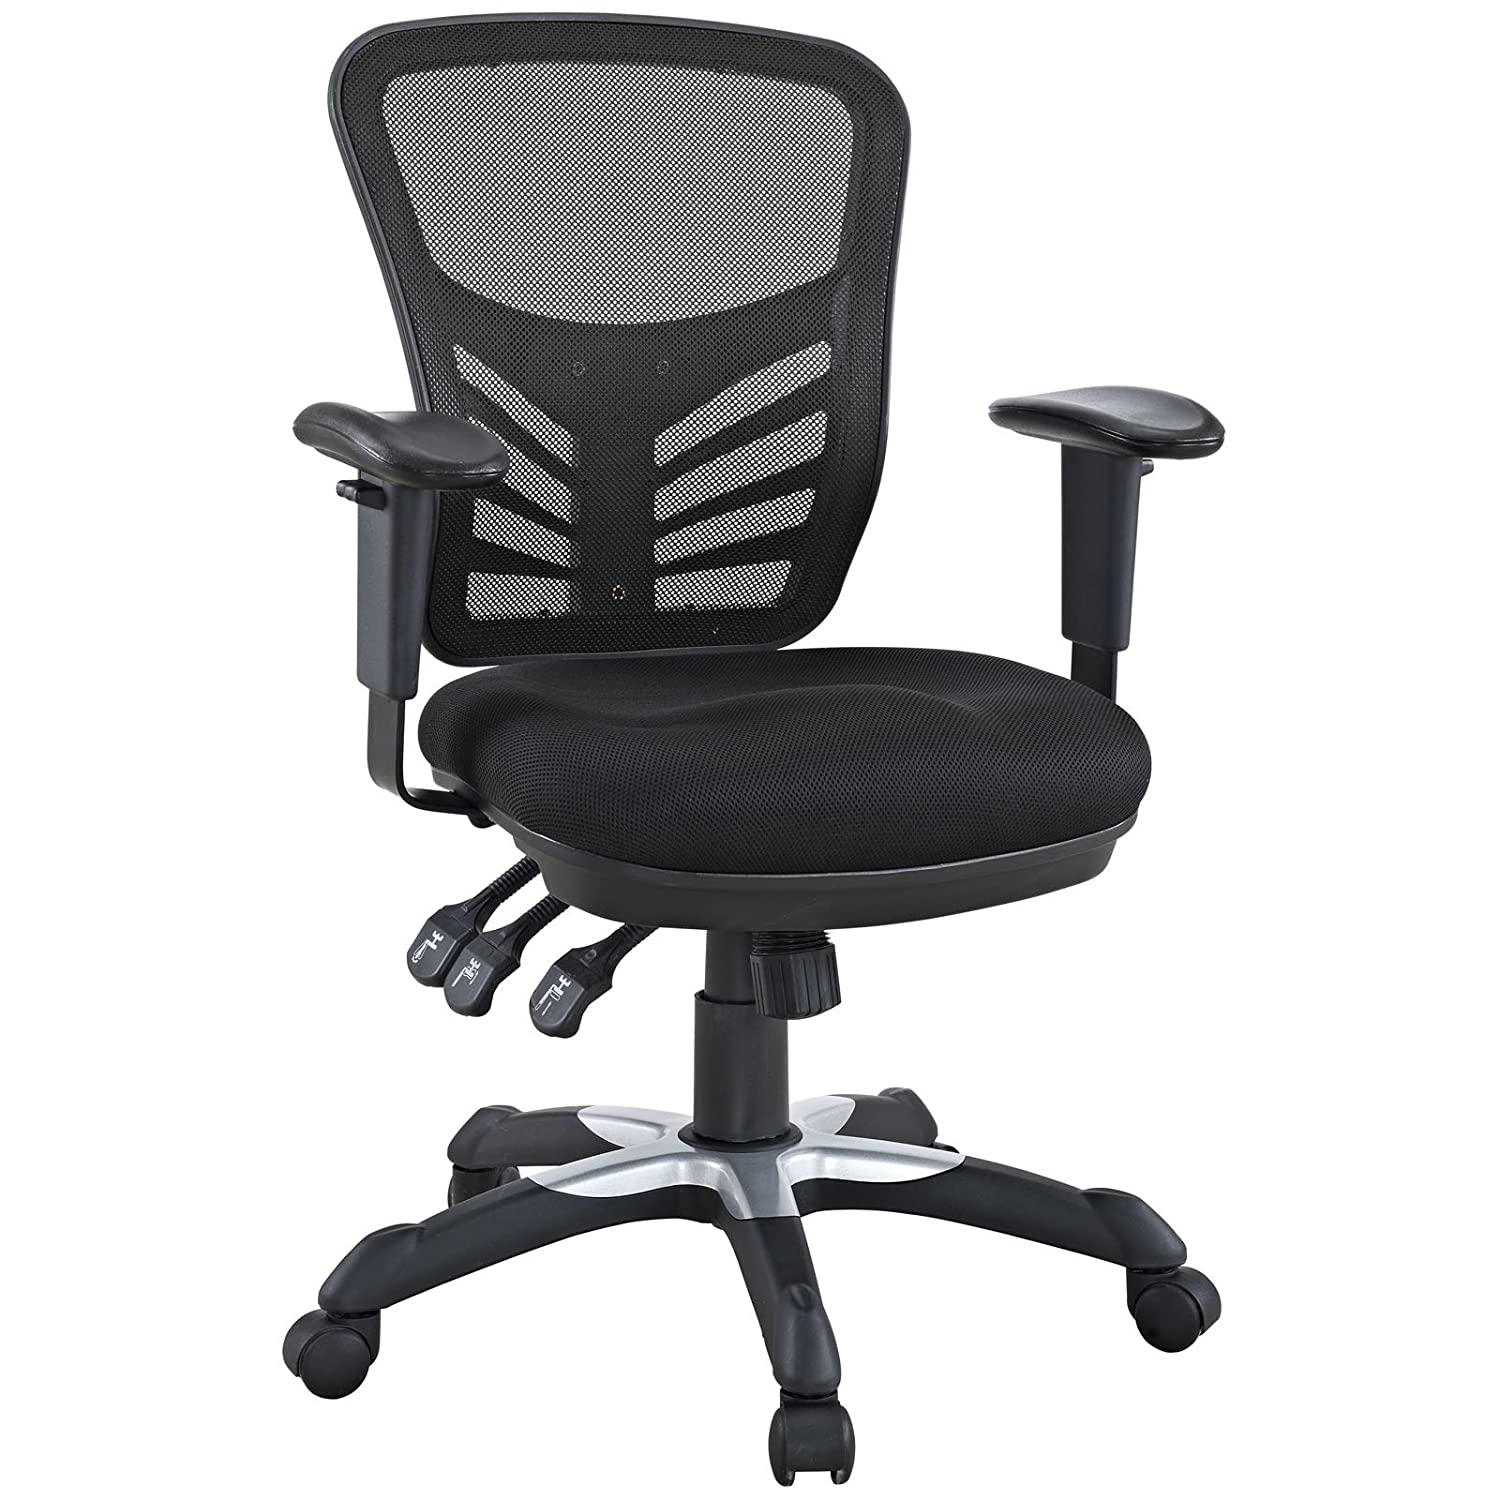 seat mesh office havenside white frame home modway overstock free product bellport edge chair today garden shipping